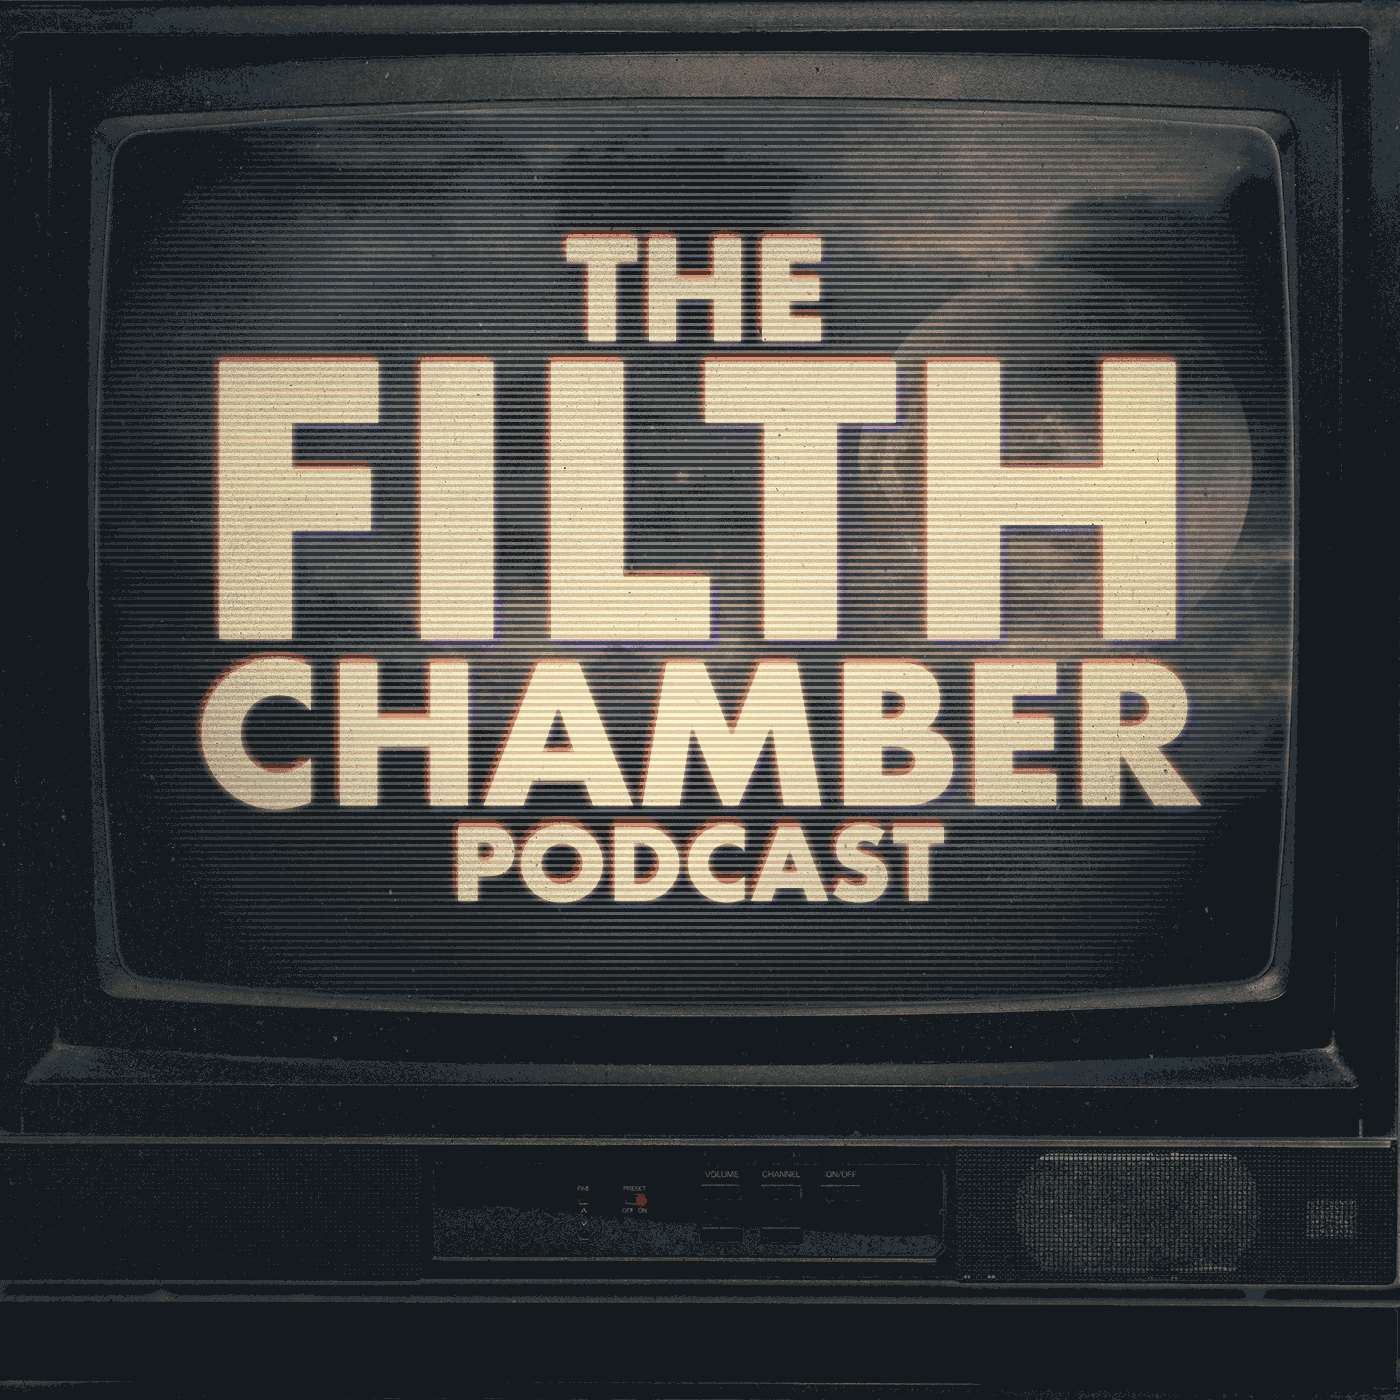 Filth-Chamber-Podcast-1400x400_sm.png